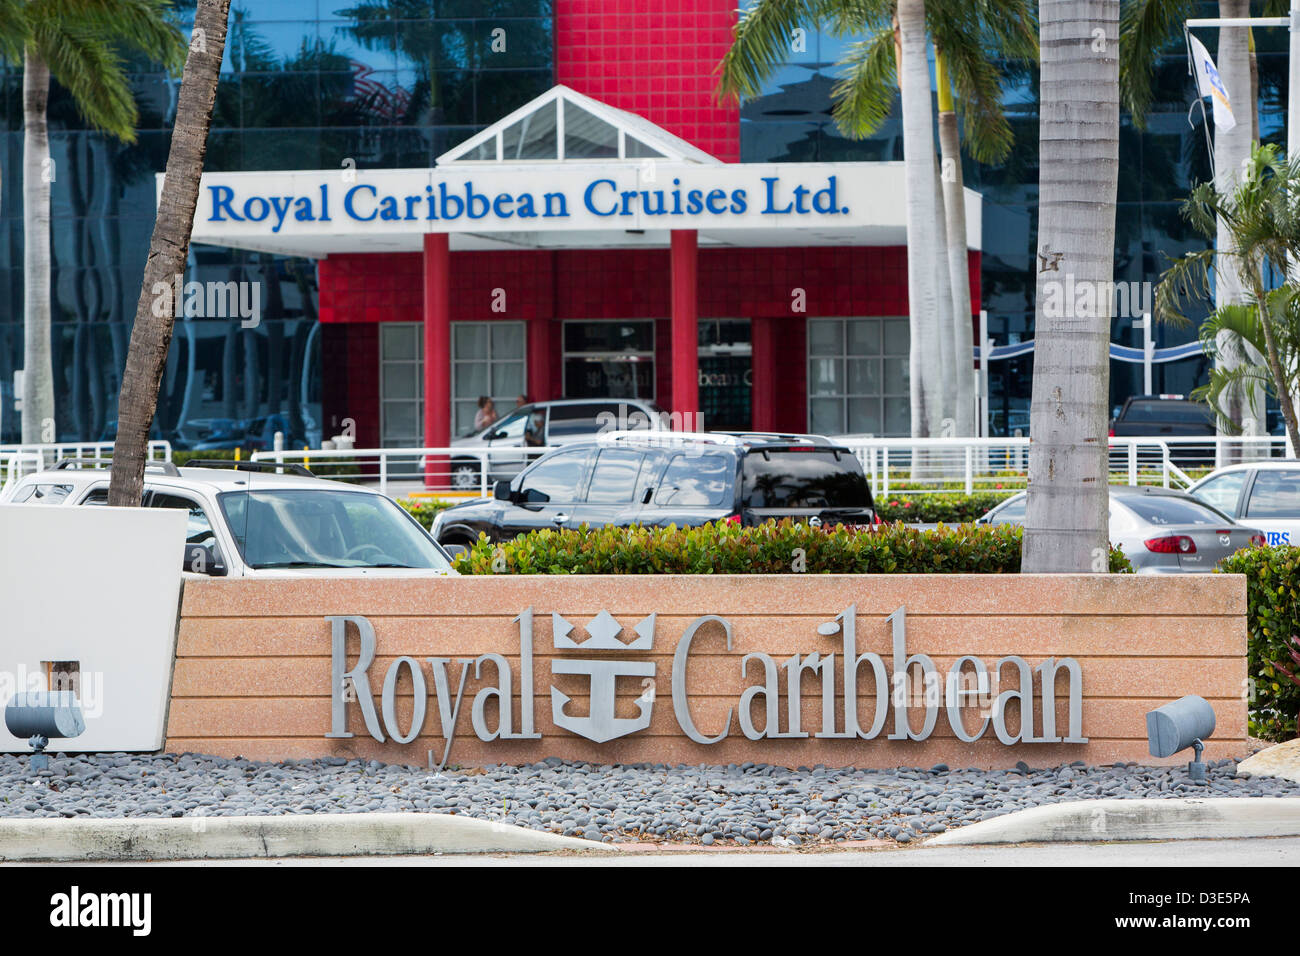 The headquarters of cruise operator Royal Caribbean Cruises Ltd. - Stock Image